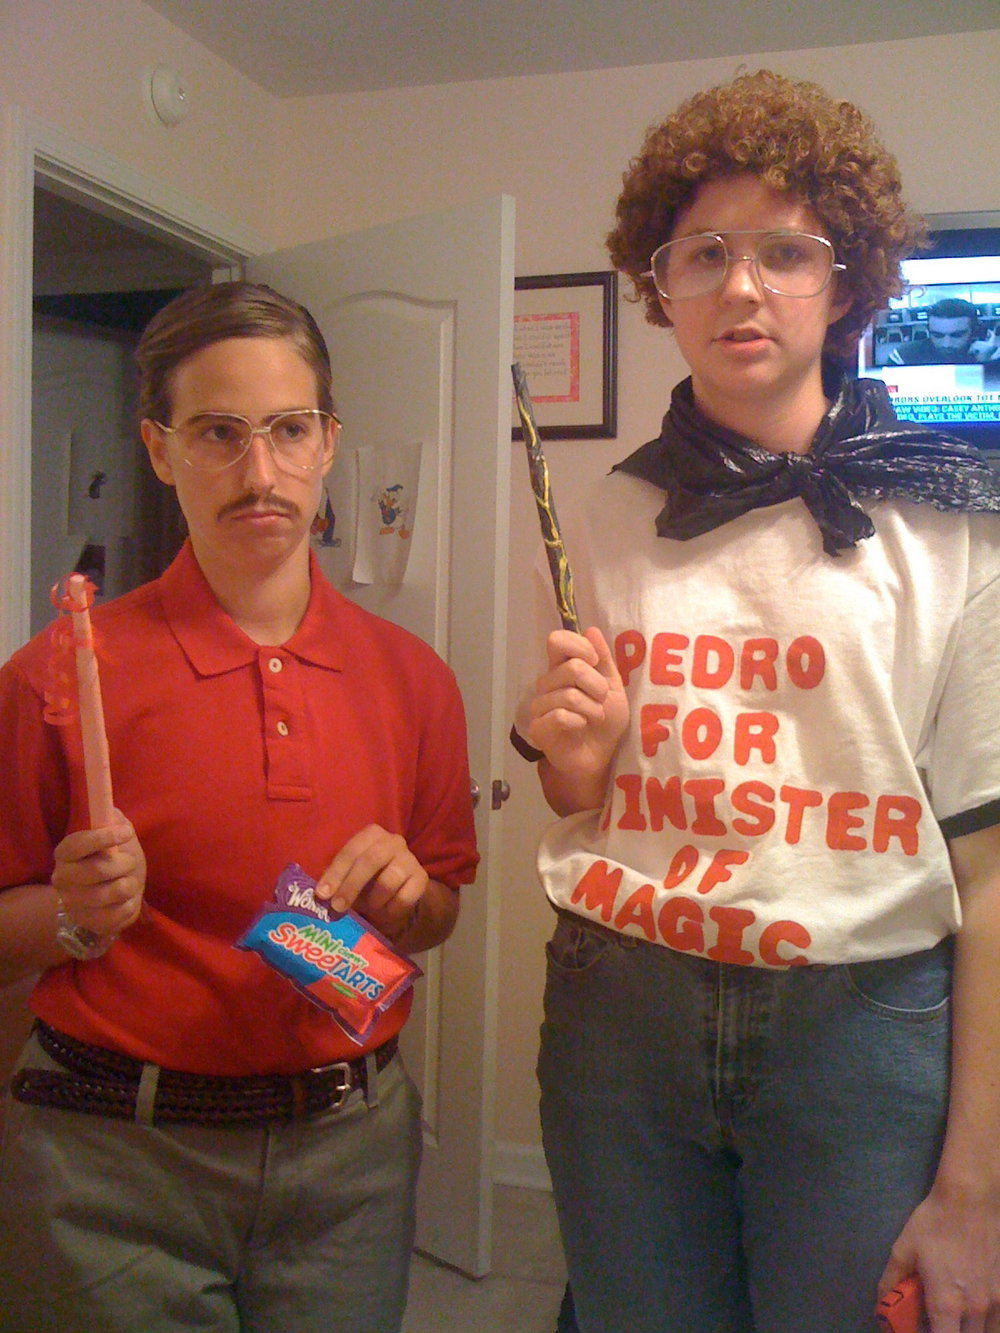 Kip and Napoleon were such a hit in high school that we decided to bring them back for a Harry Potter movie premiere while we were in college. I was, yet again, mistaken for a man during this experience; I owe that to my hair and makeup. And taping down of my chest with medical tape. Add trash bags and paper wands, and voila! A costume within a costume.